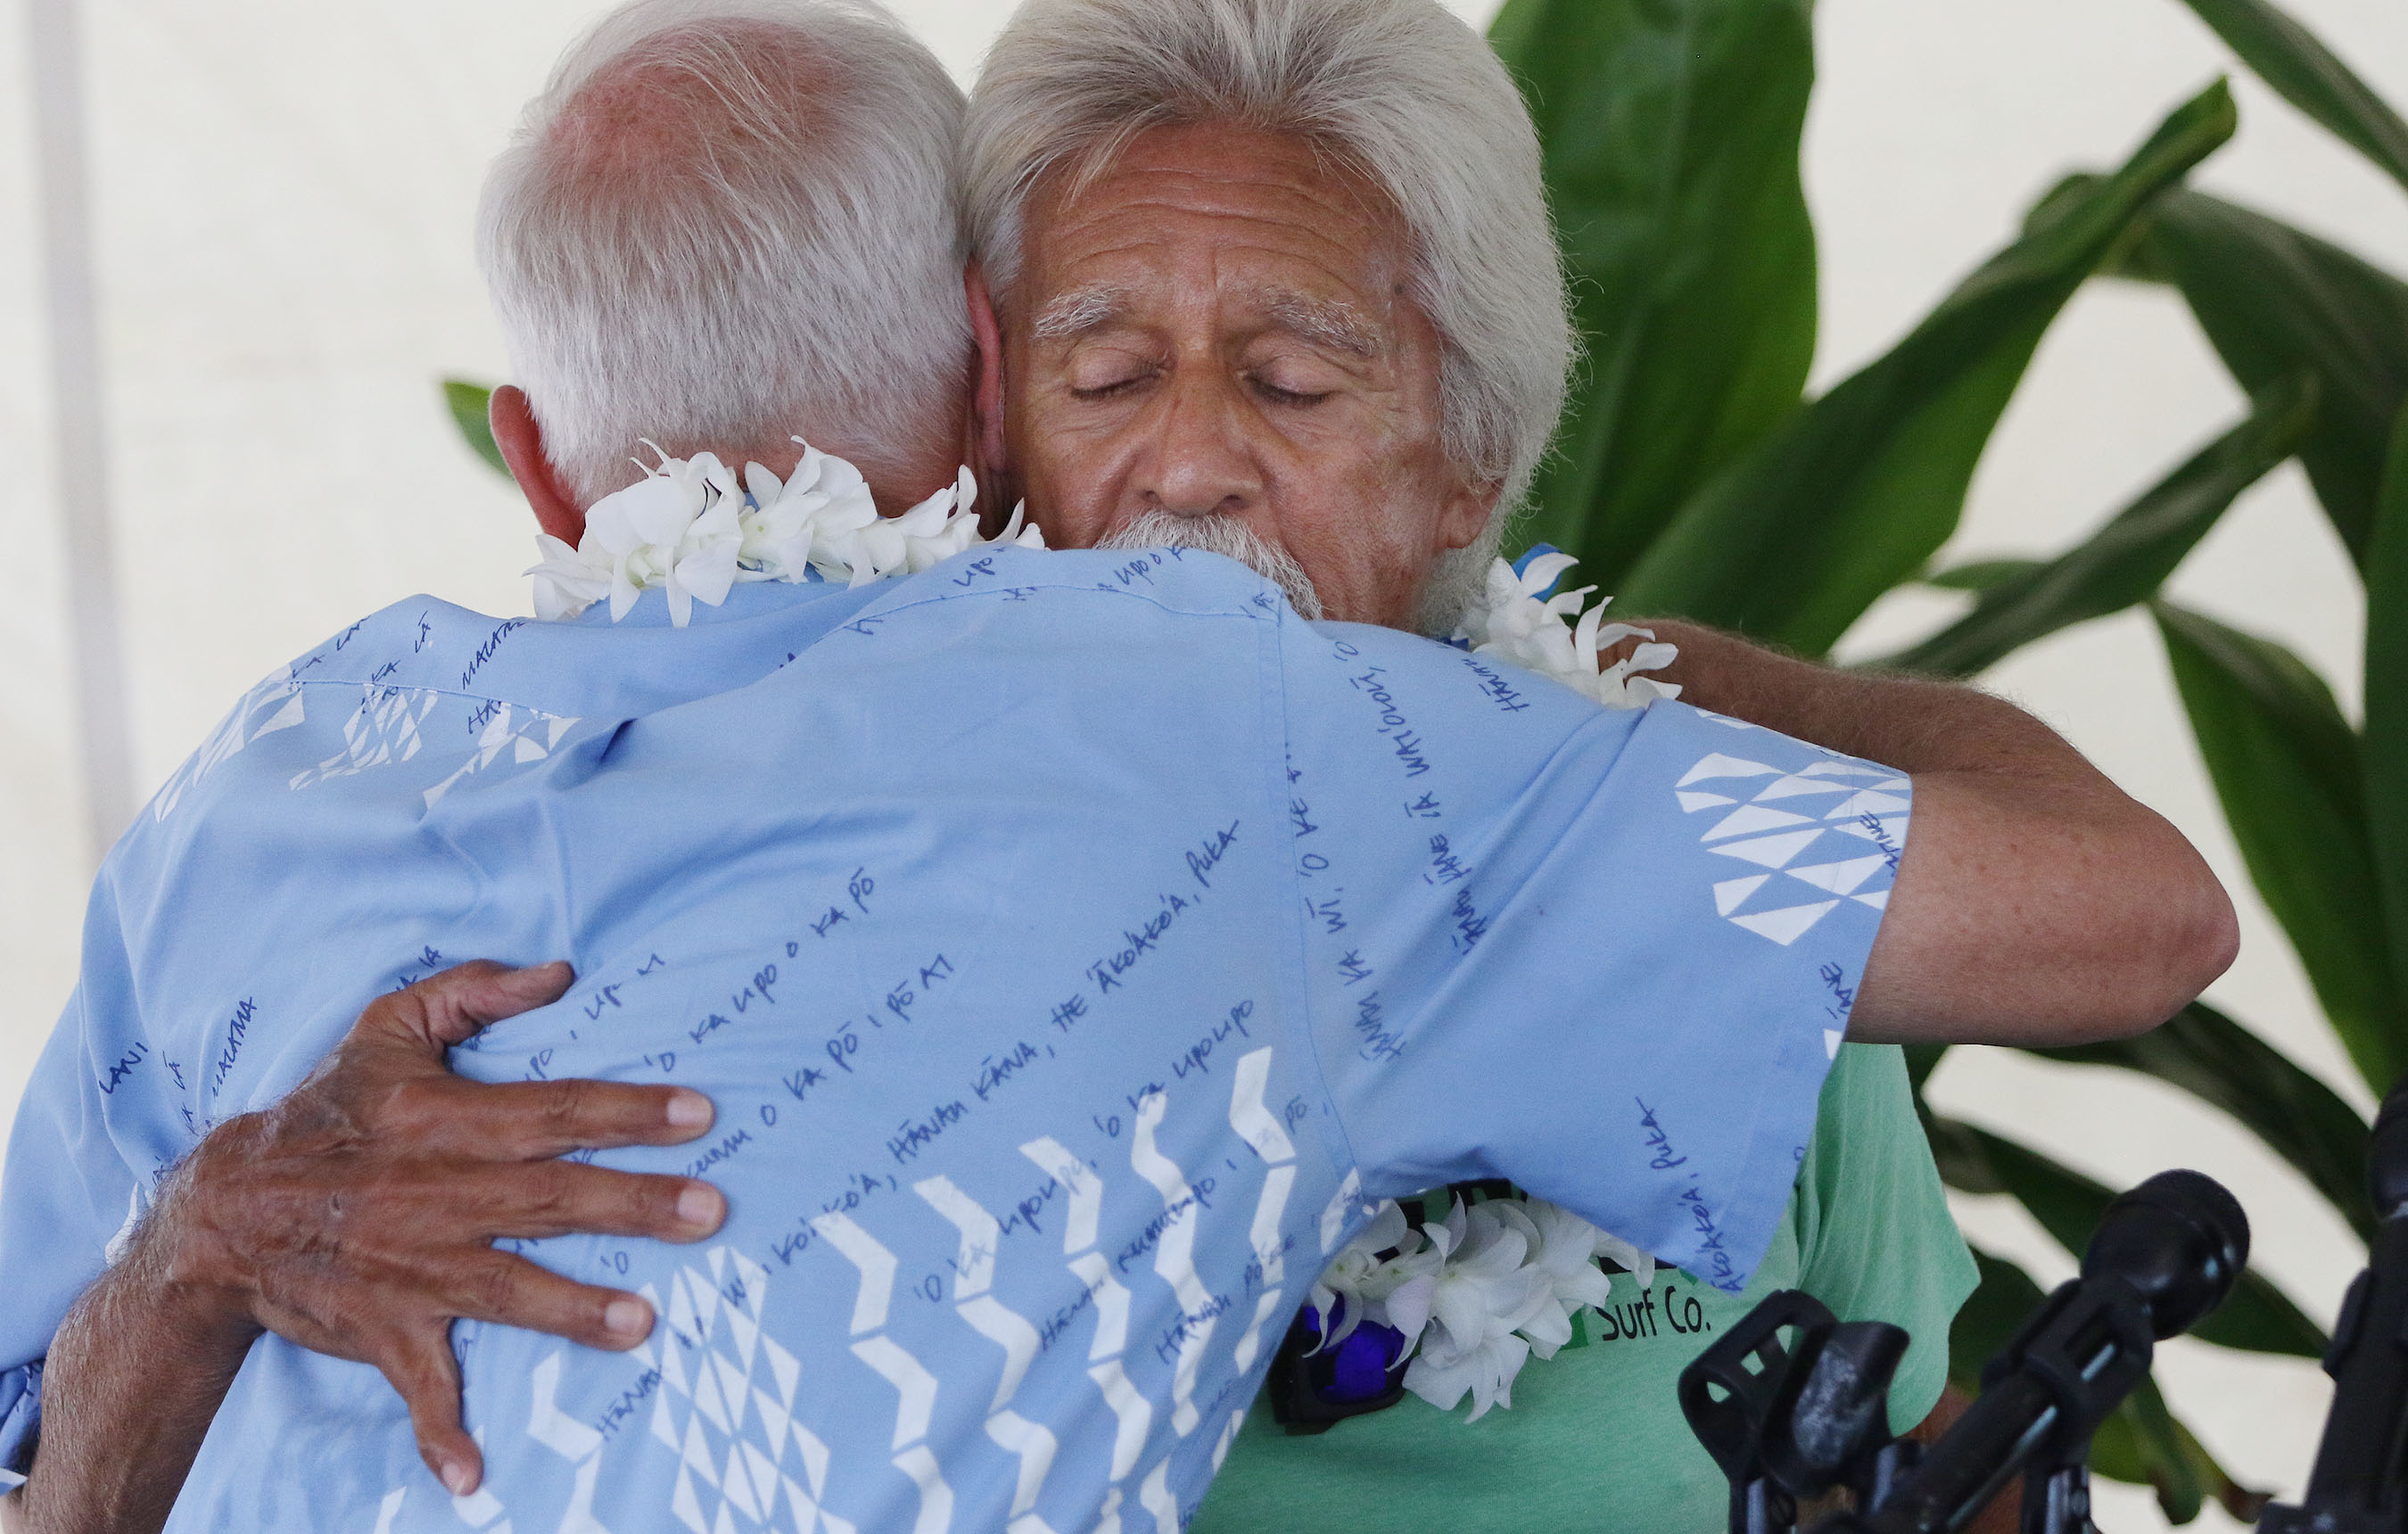 <p>Caldwell hugged Hale Mauliola resident &#8220;Uncle Clay.&#8221; Despite the celebration, a survey released Wednesday showed a 4 percent increase in Hawaii&#8217;s homeless population over a year earlier.</p>